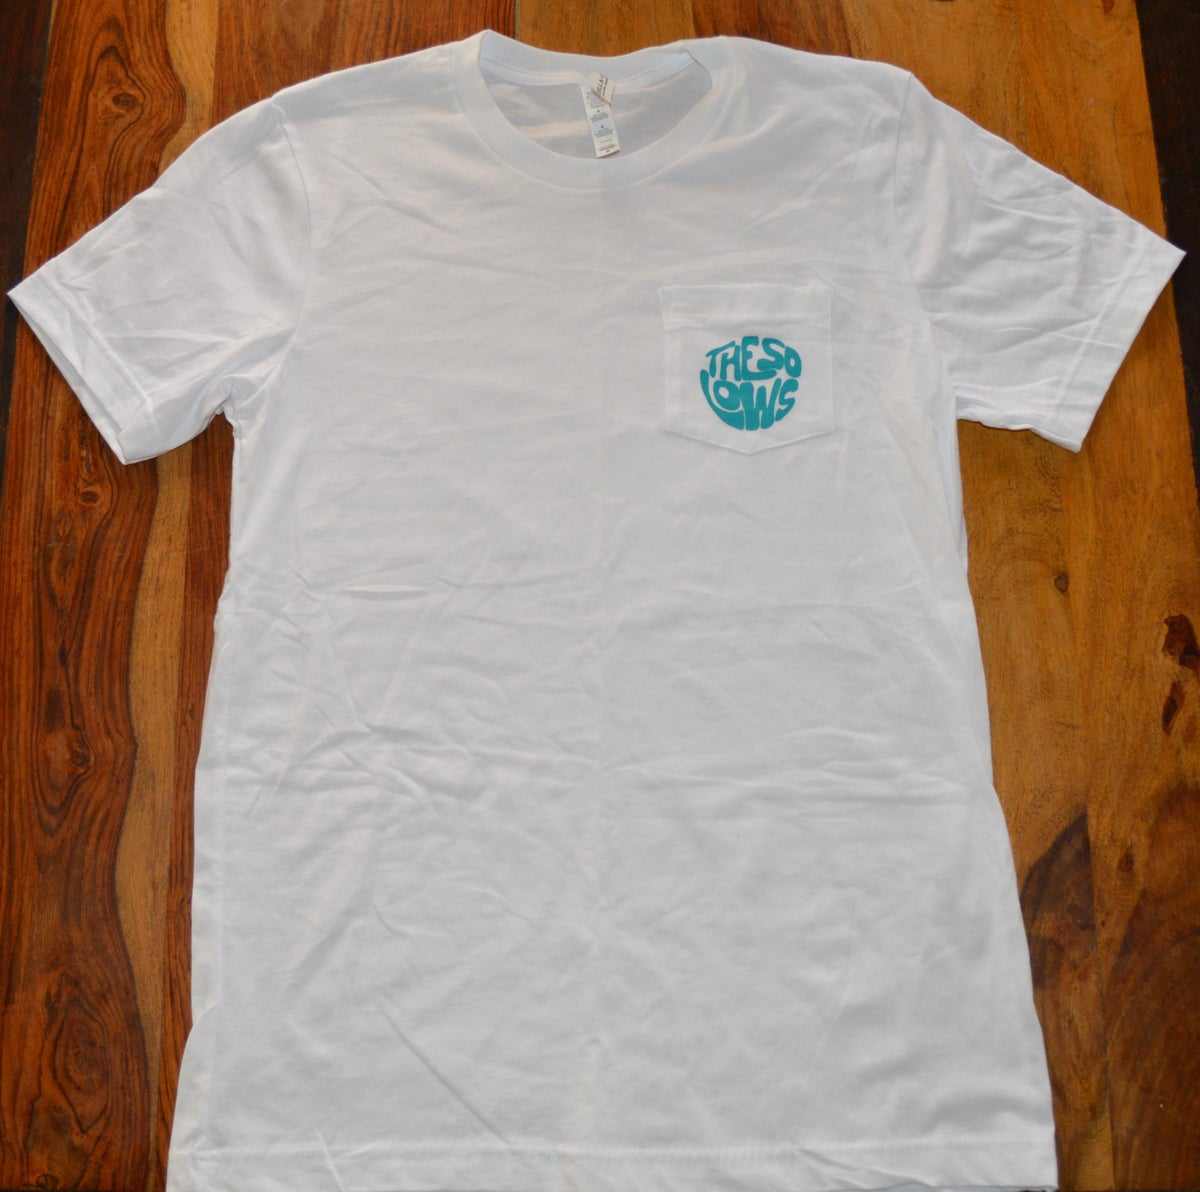 The So Lows High Vibrations T-Shirt (White Pocket Tee)